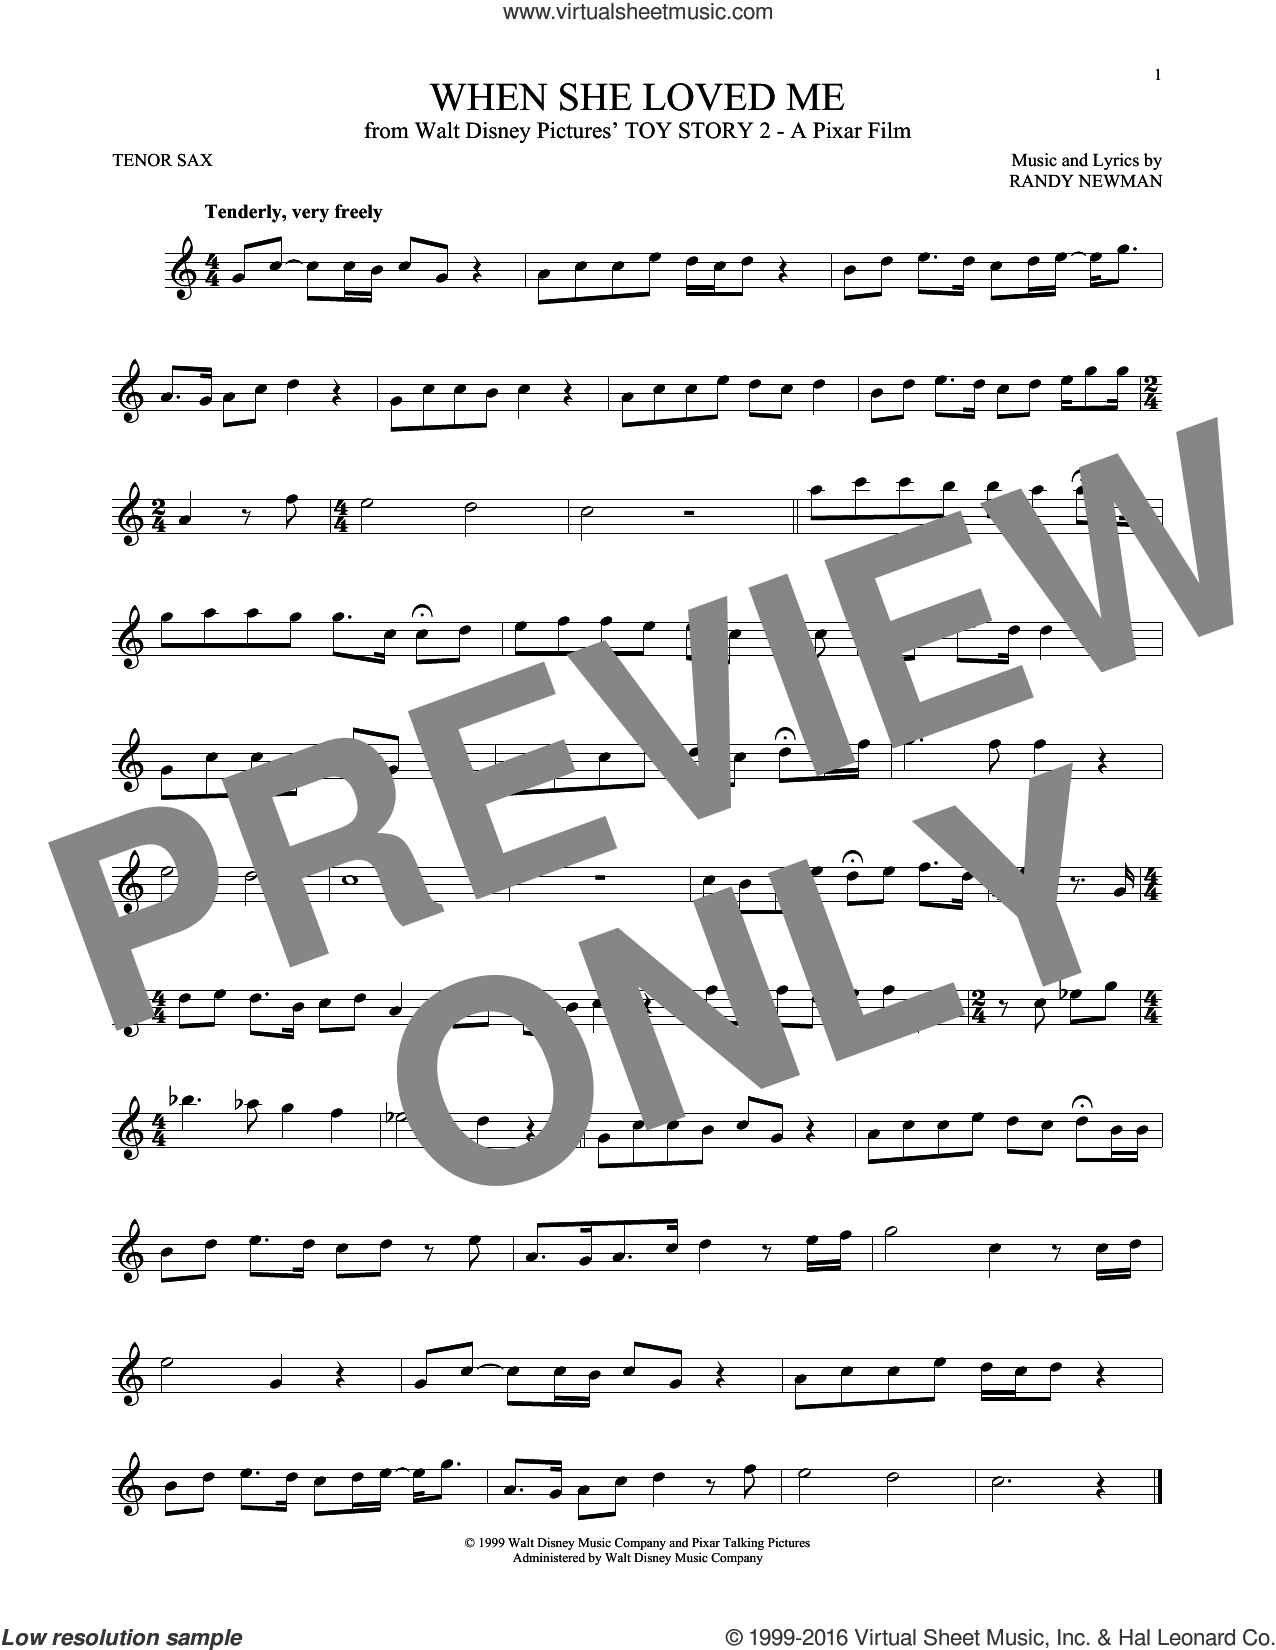 When She Loved Me (from Toy Story 2) sheet music for tenor saxophone solo by Sarah McLachlan and Randy Newman, intermediate skill level